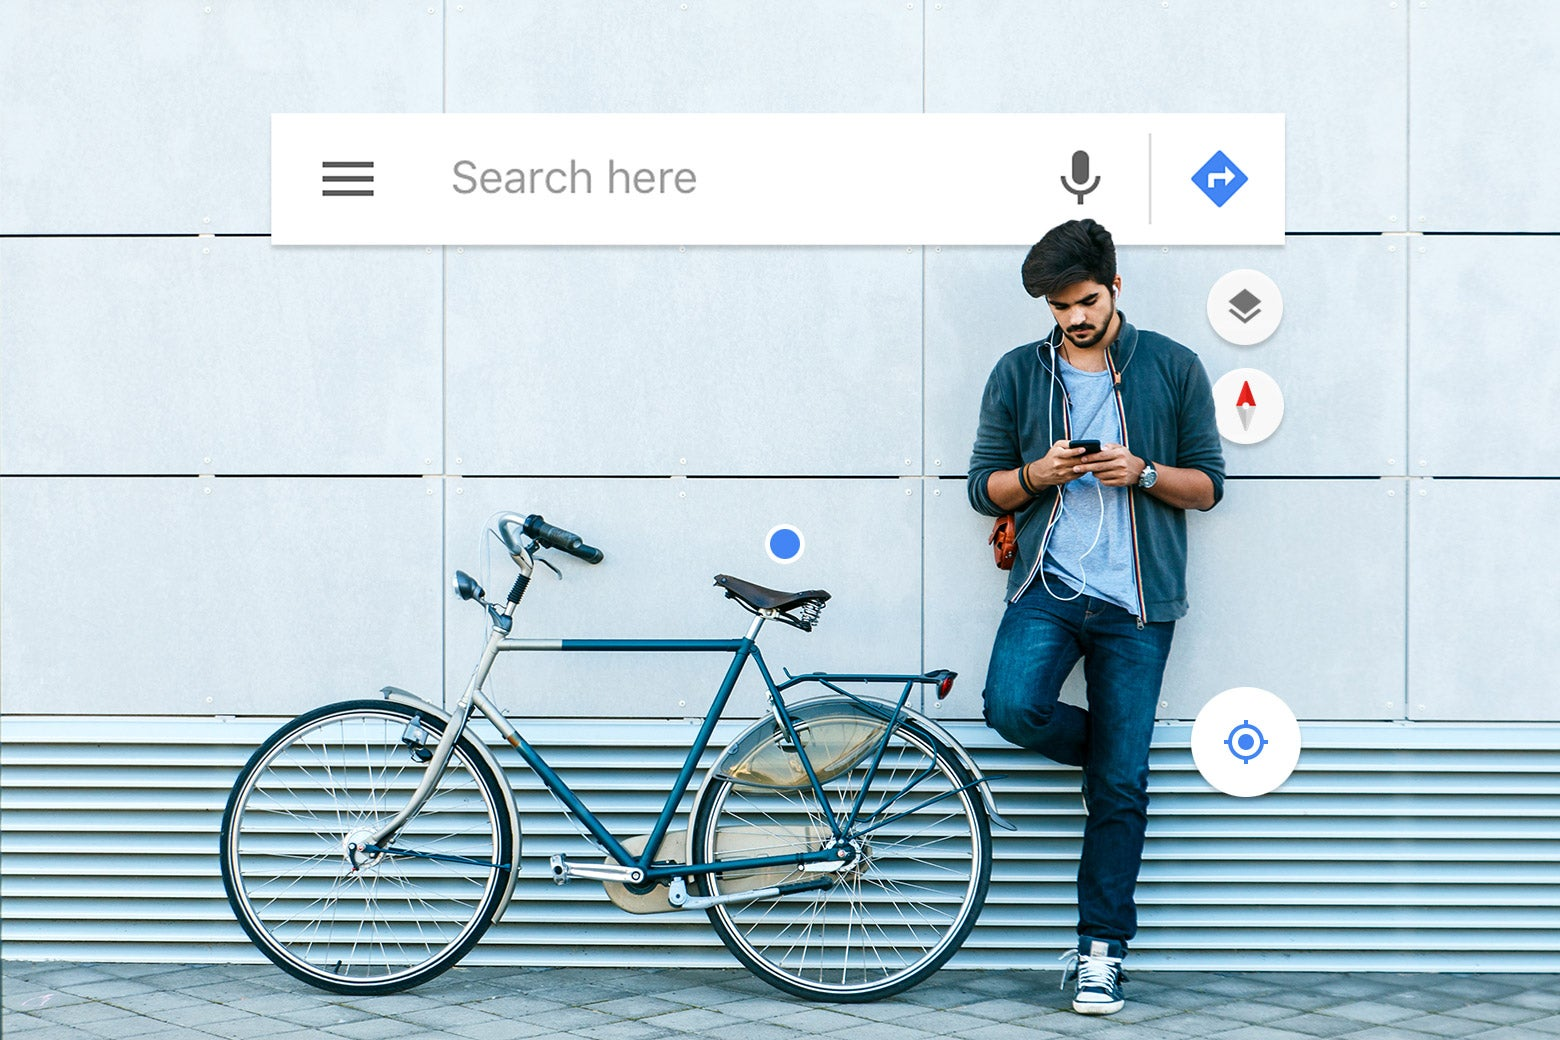 A man on his iPhone standing next to his bicycle.